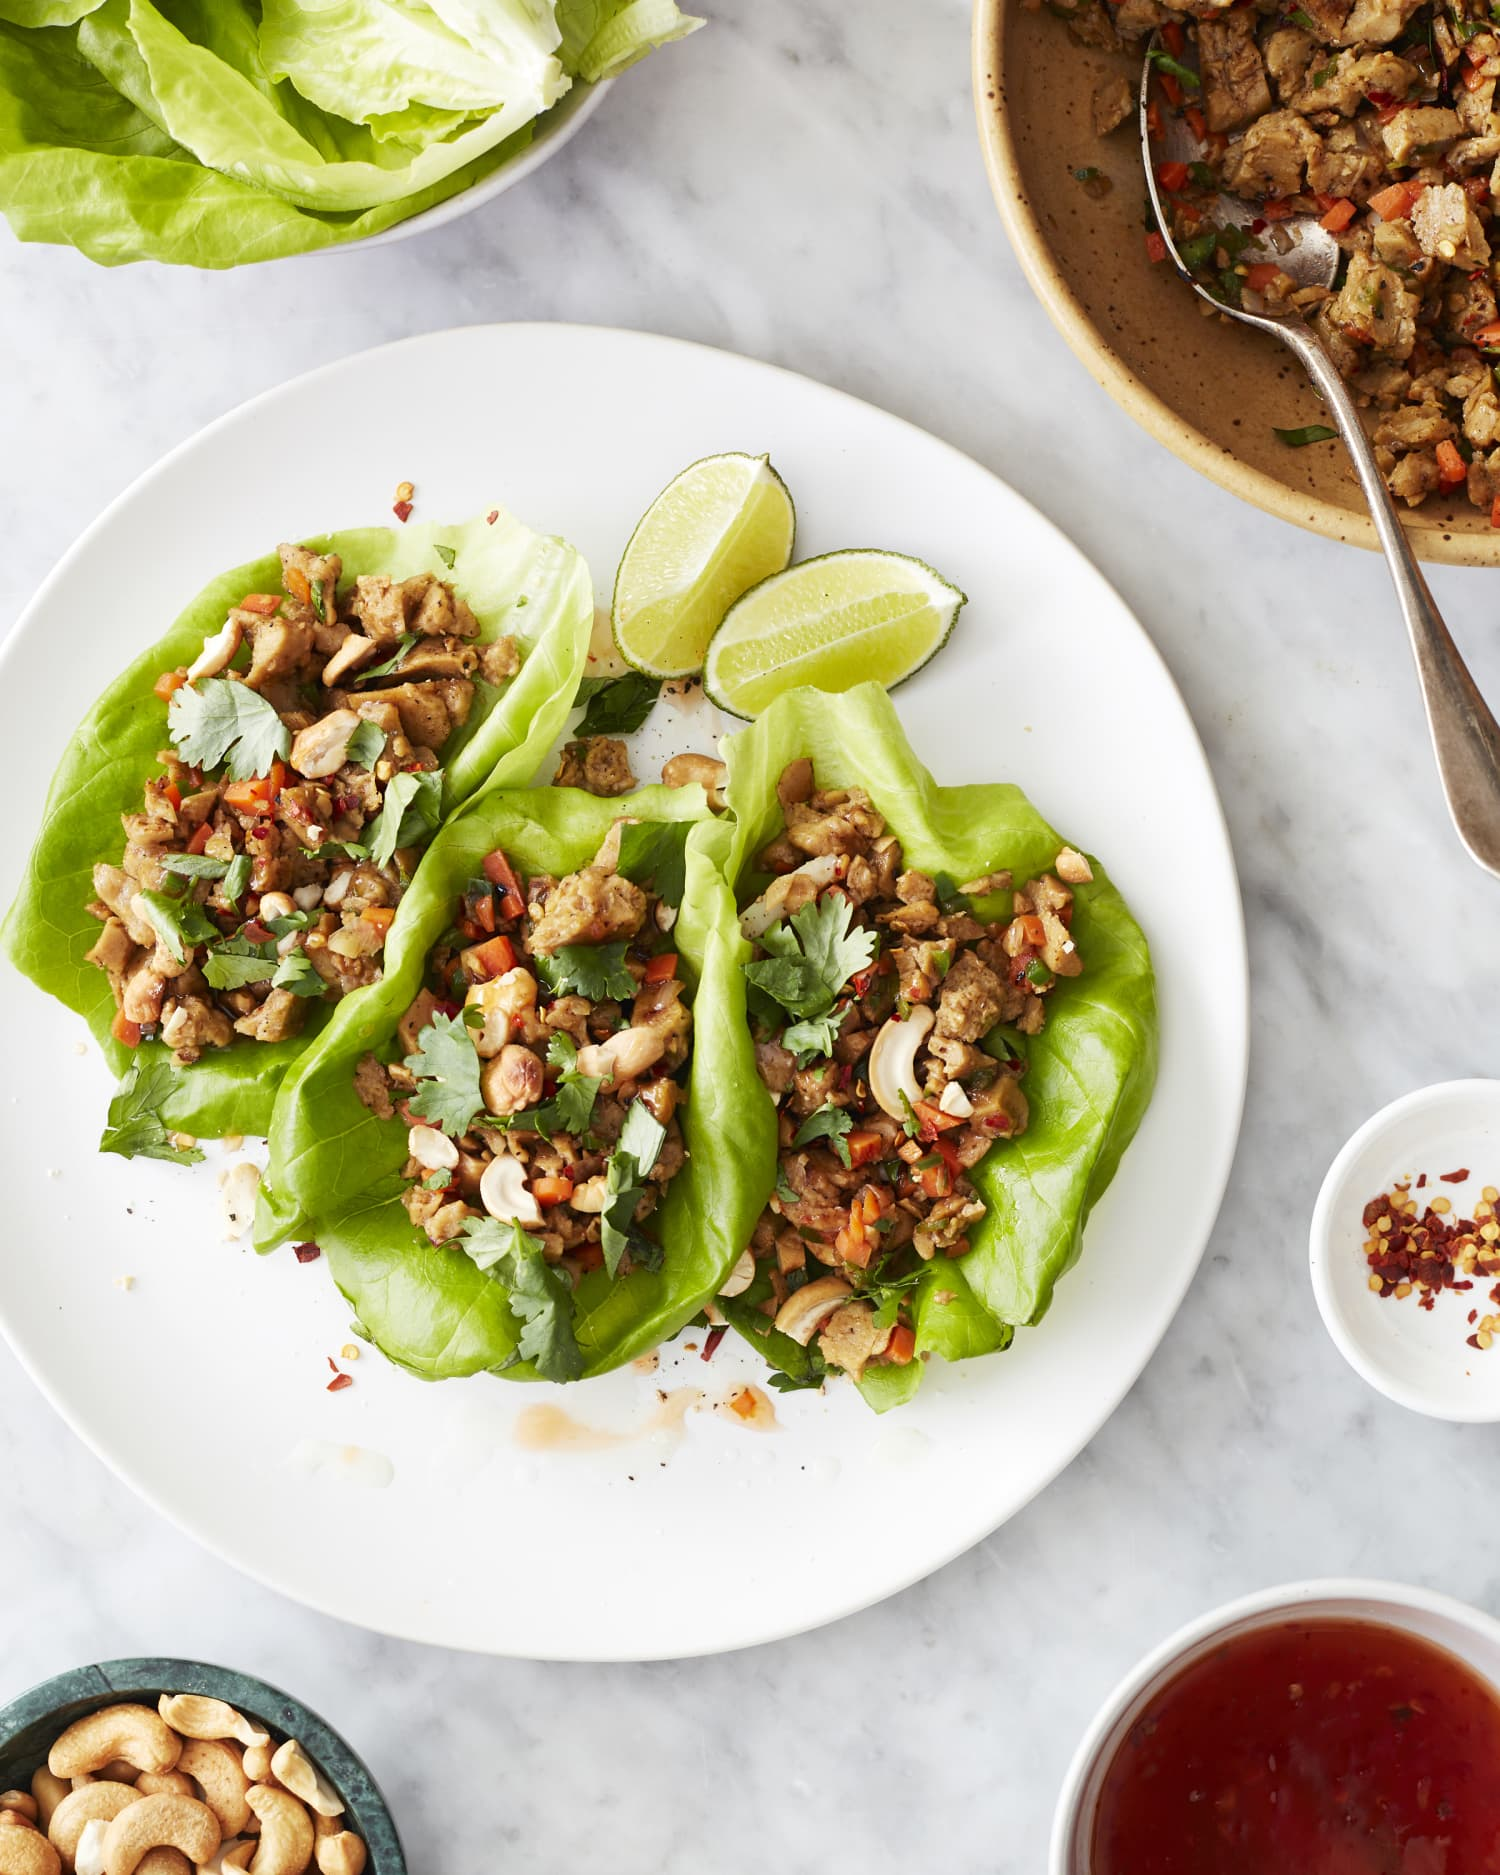 Spicy, Crunchy, Protein-Packed Lettuce Wraps Are Ready in 30 Minutes